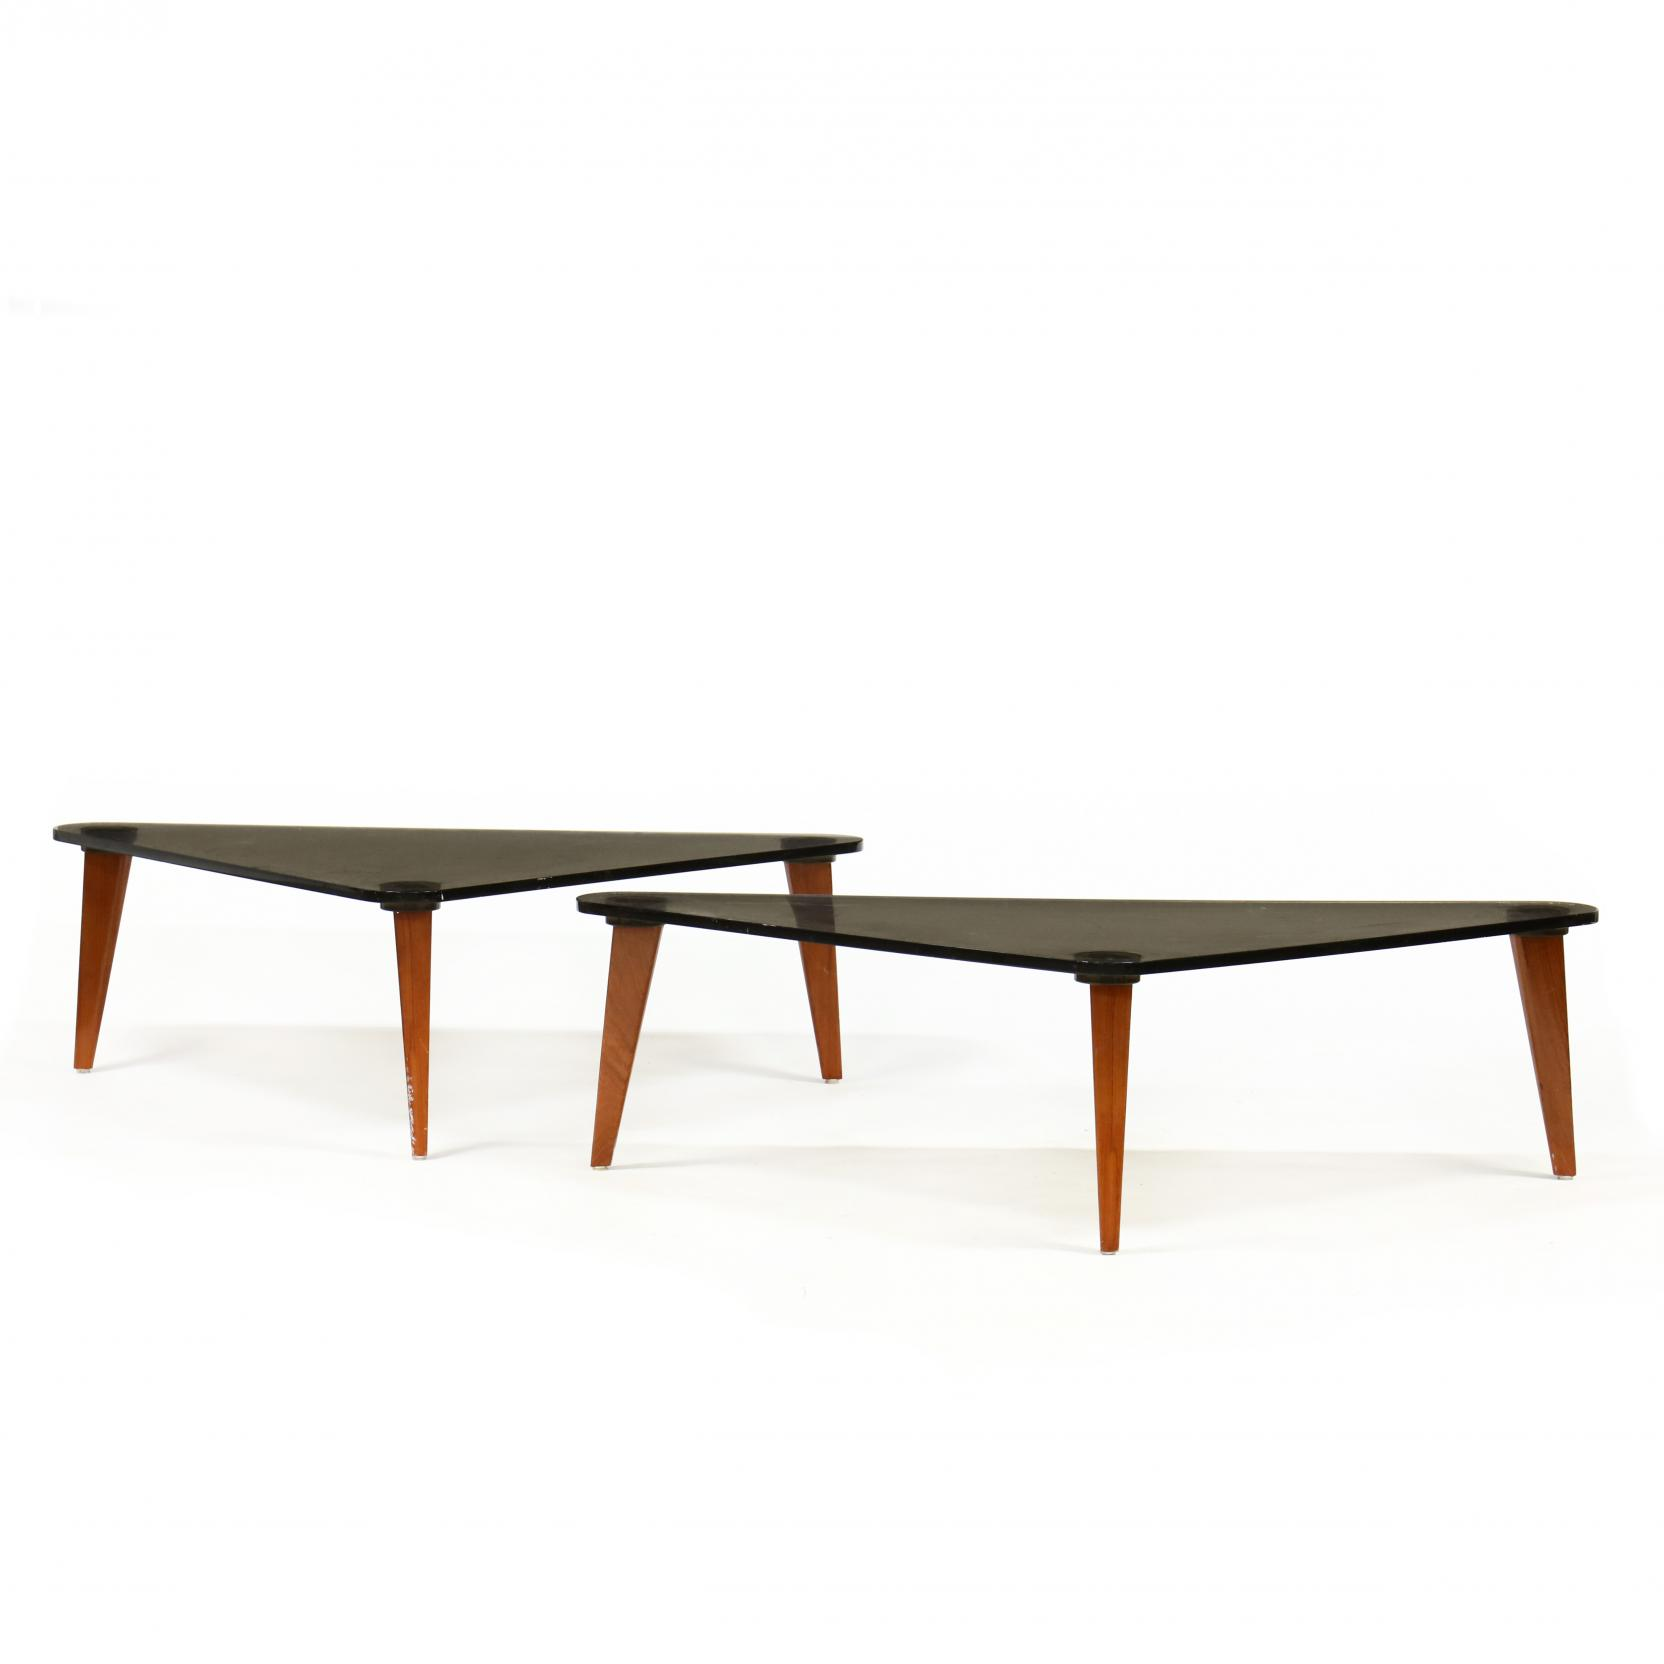 pair-of-modern-lucite-and-mahogany-coffee-tables